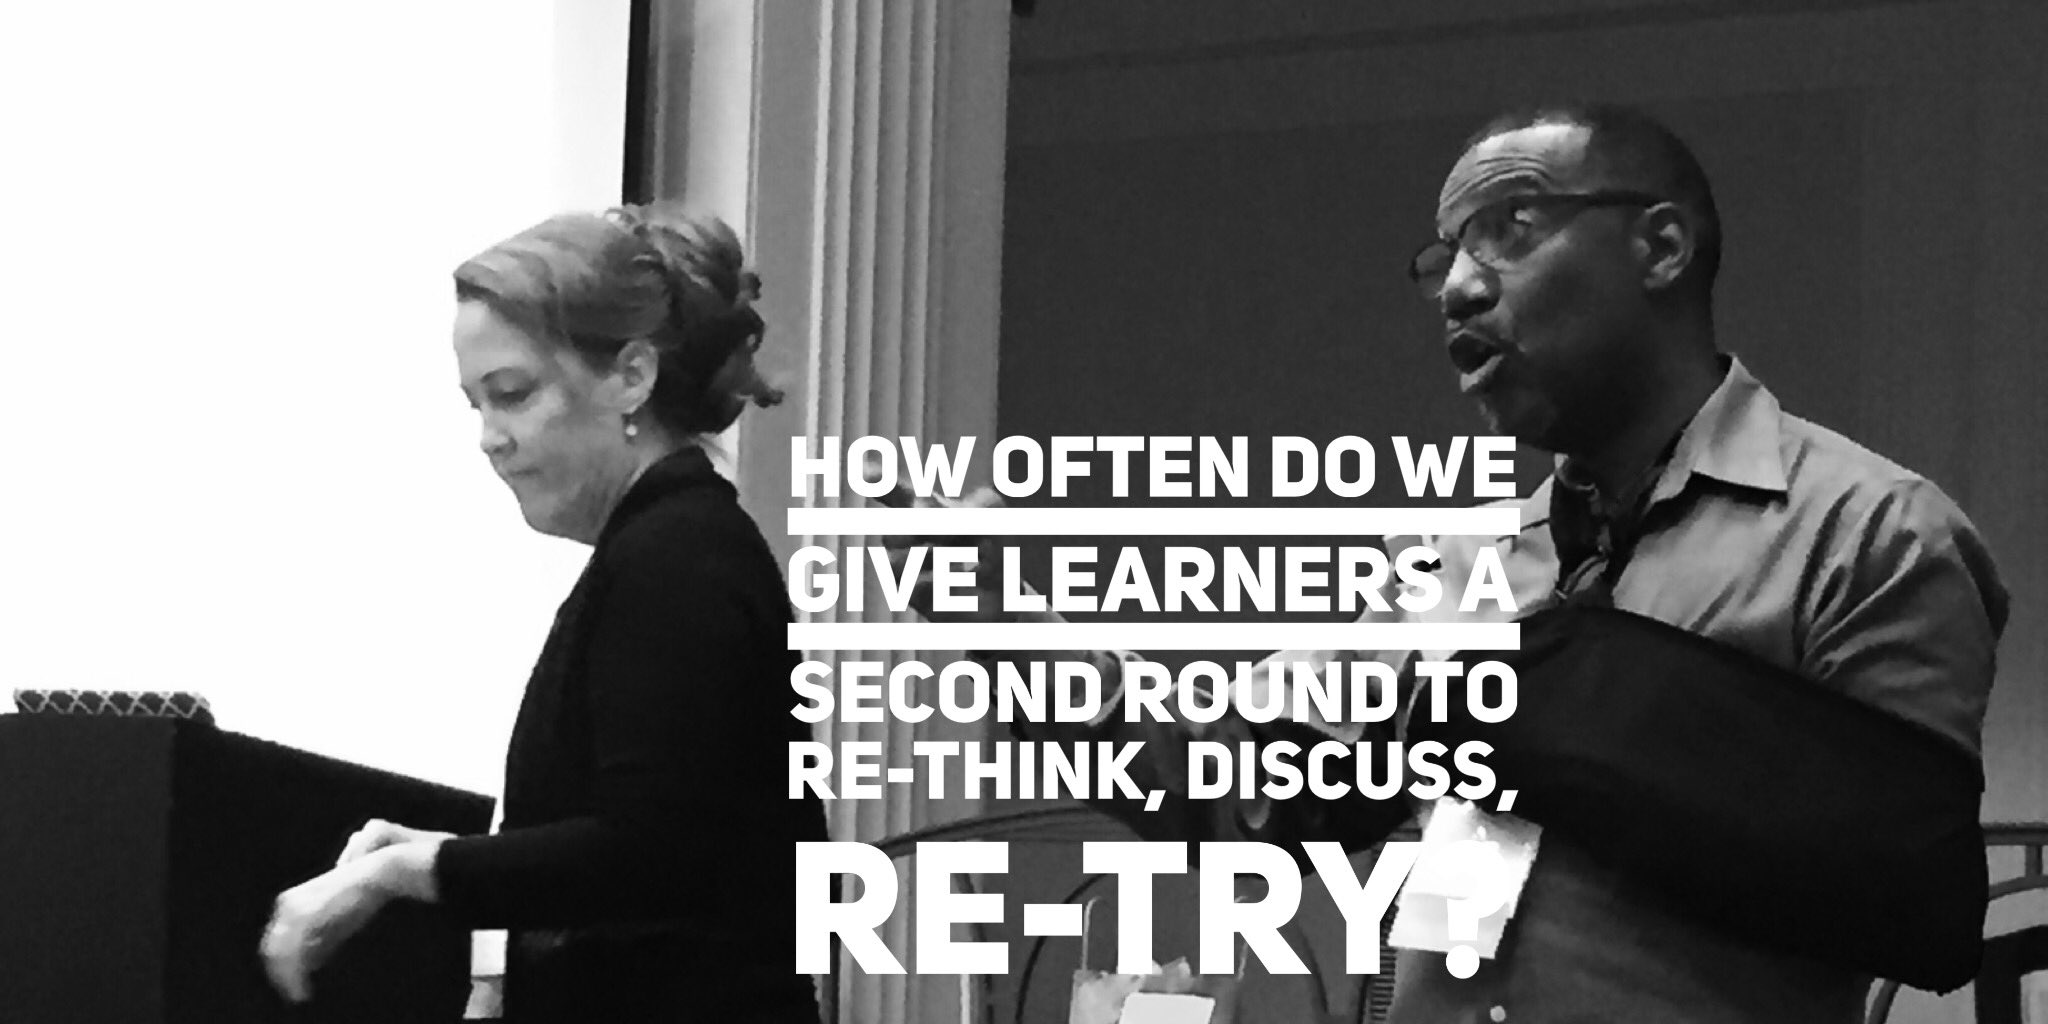 @sewilkie @RoyBPS  How often do we give learners a second round to re-think, discuss, re-try? #BLC16 #lism https://t.co/NzOzvzas6q